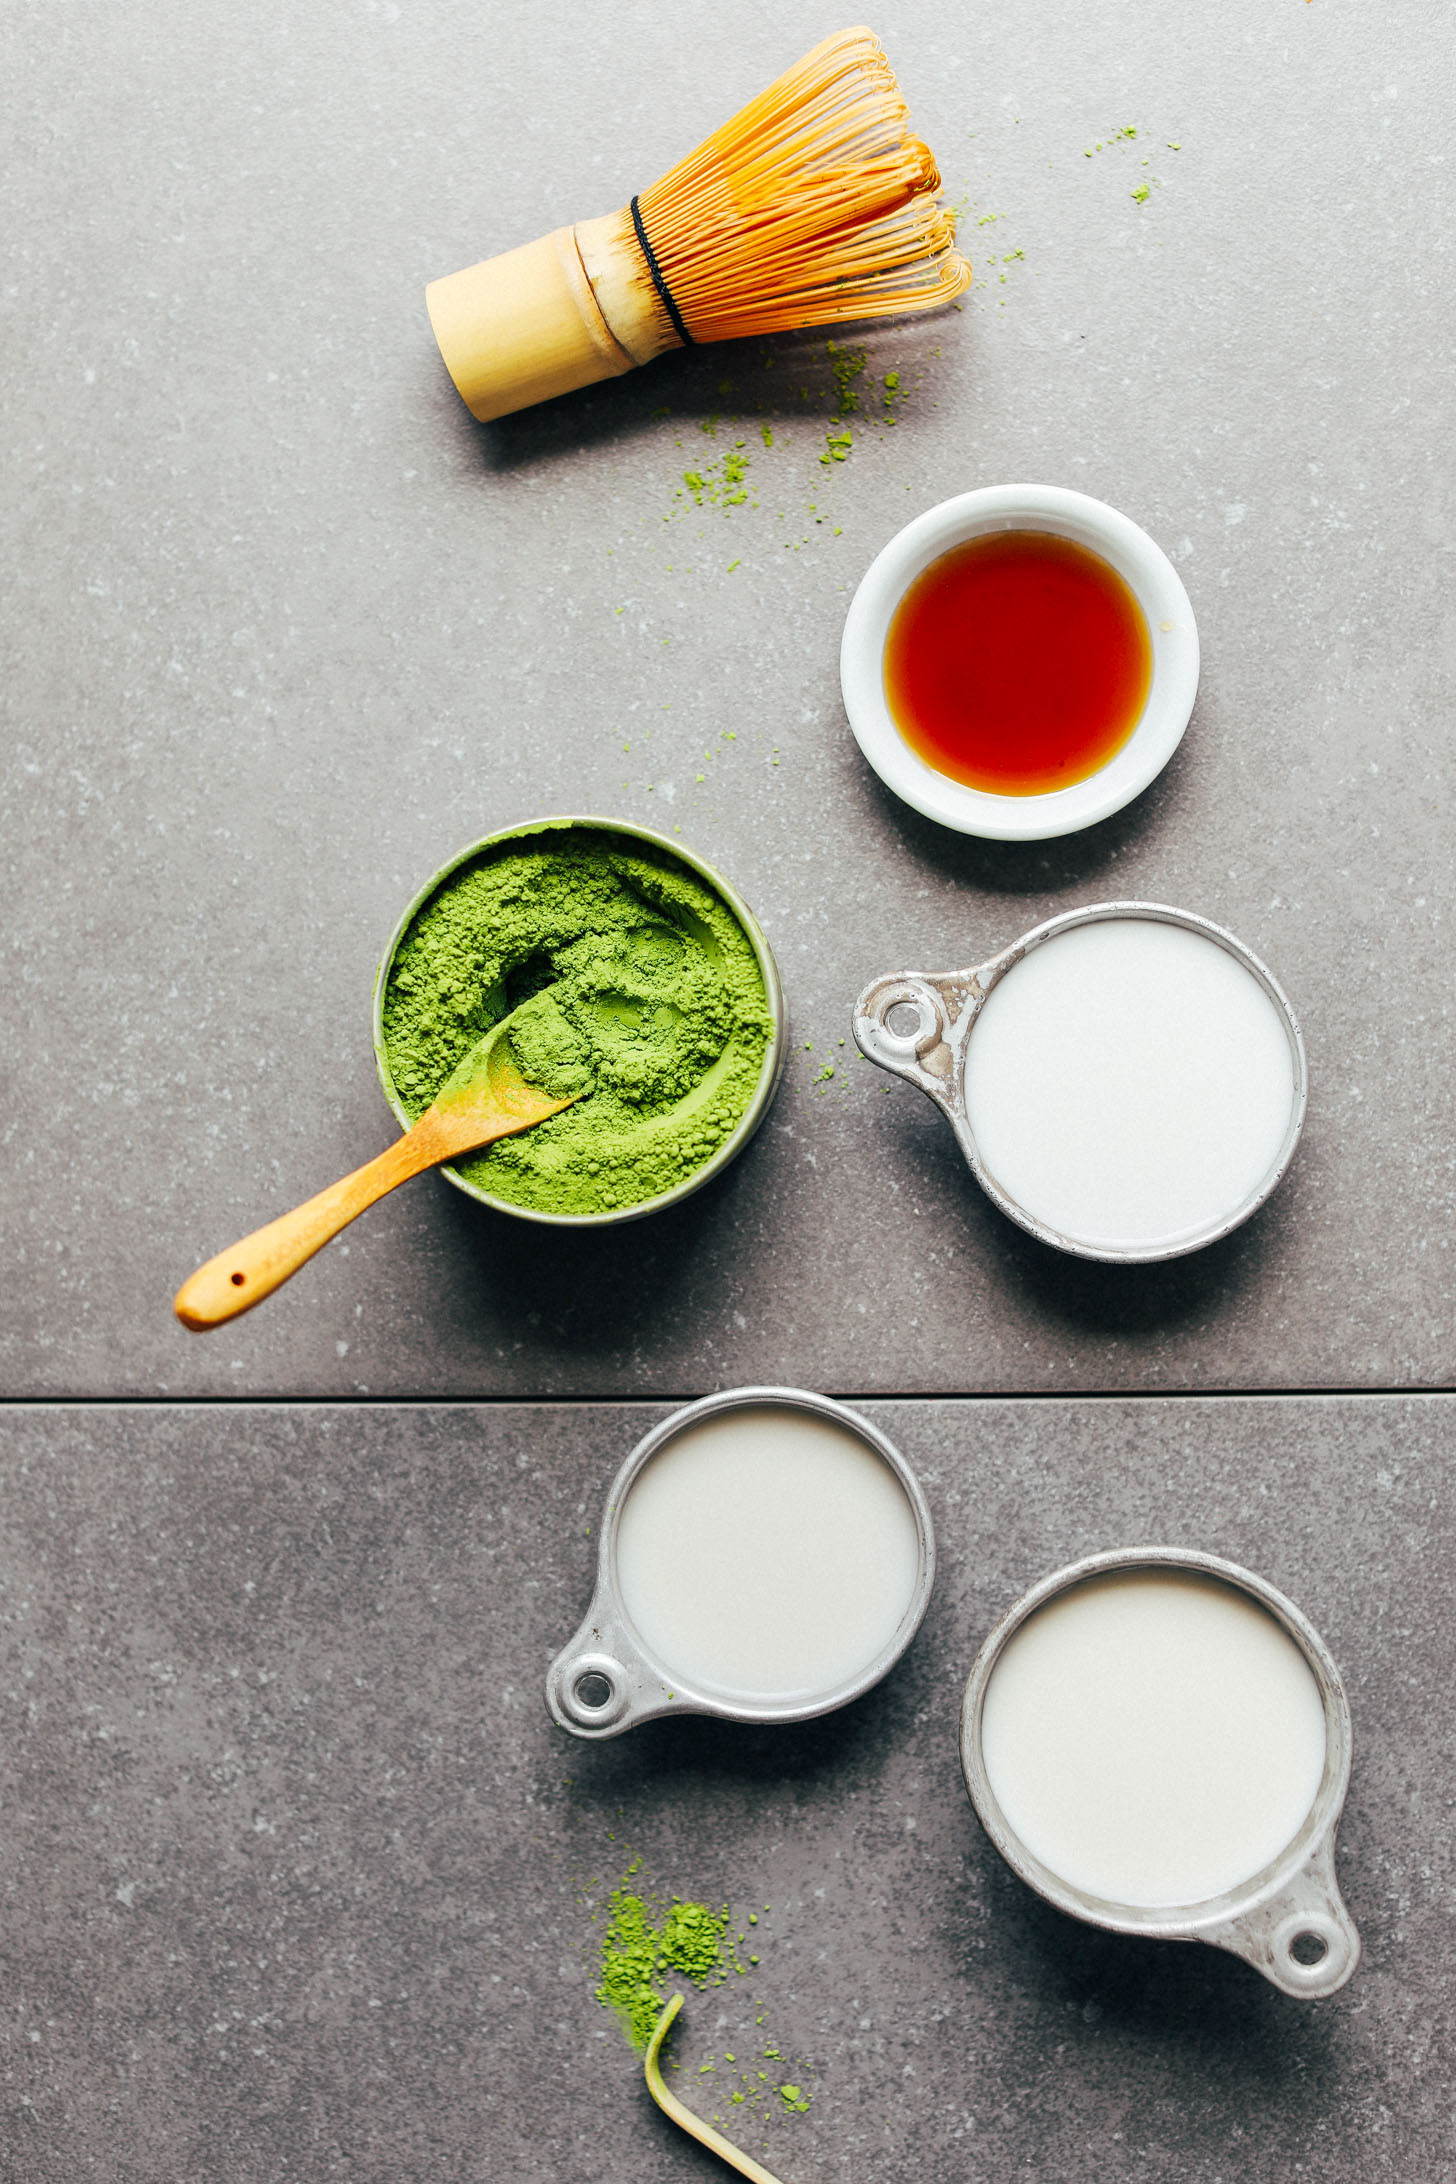 Bamboo whisk, matcha, maple syrup, and nut milks for making the best Matcha Latte